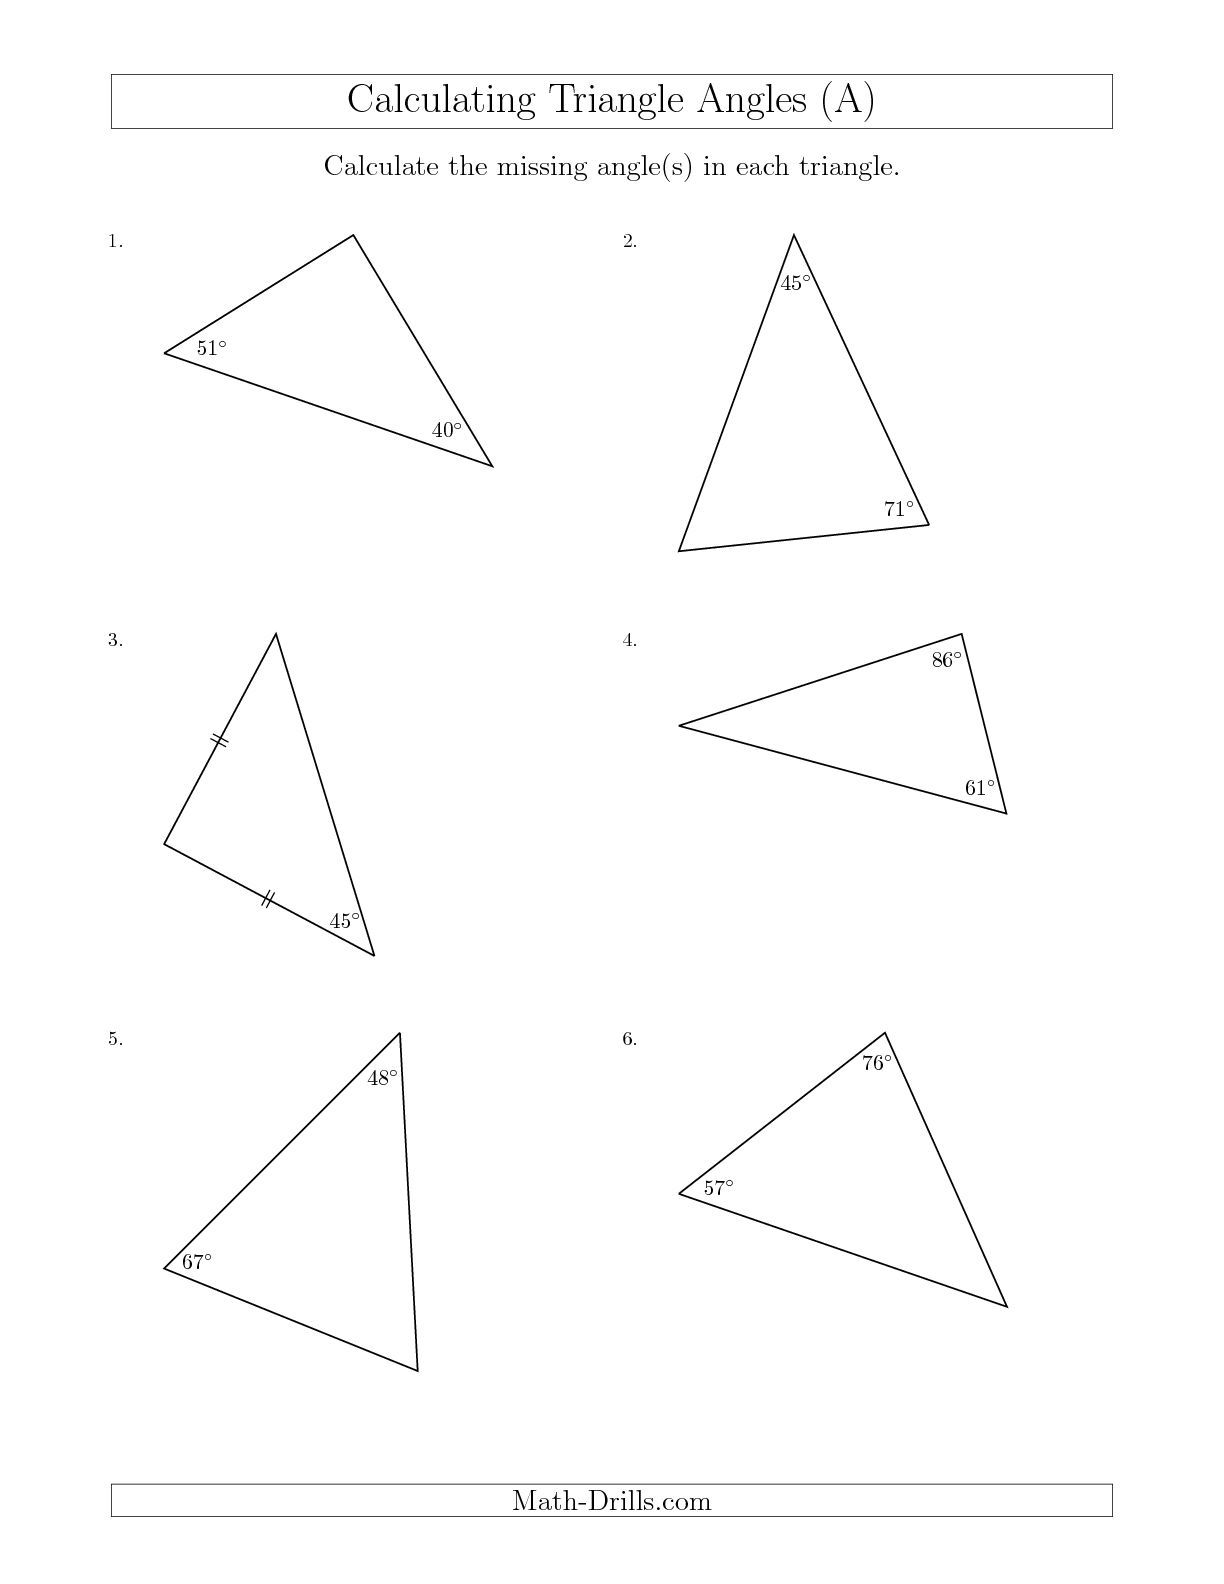 Calculating Angles Of A Triangle Given The Other Angle S